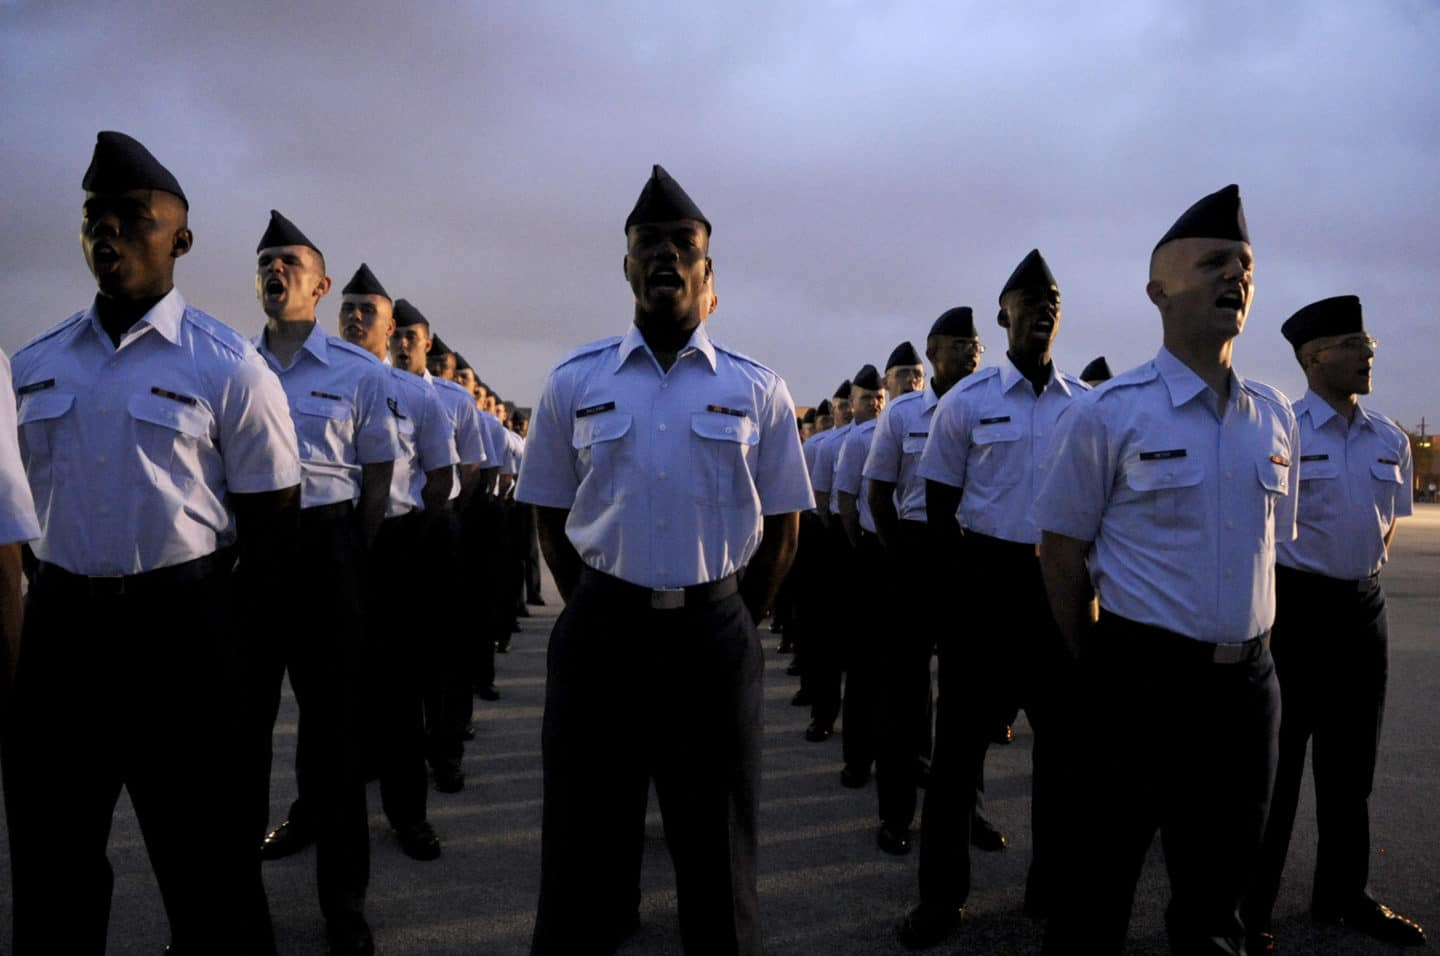 Air Force Graduation at Lackland AFB (2019 Schedule)